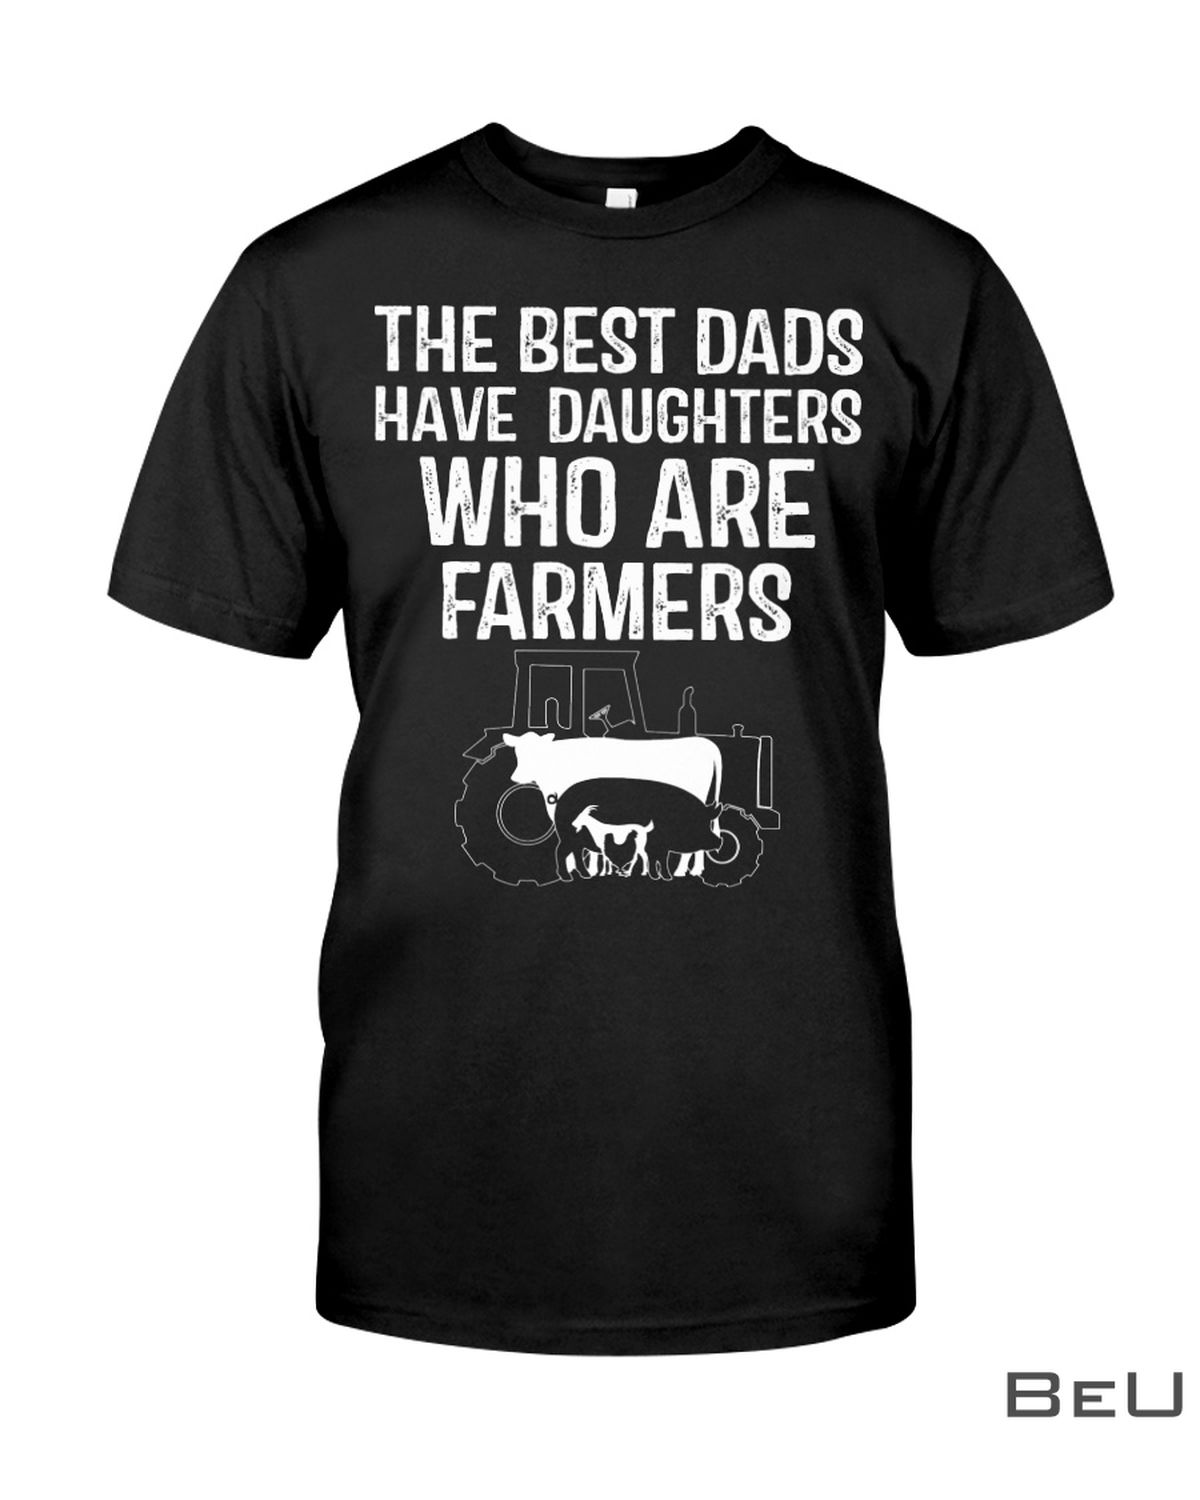 The Best Dads Have Daughters Who Are Farmers Shirt, hoodie, tank top